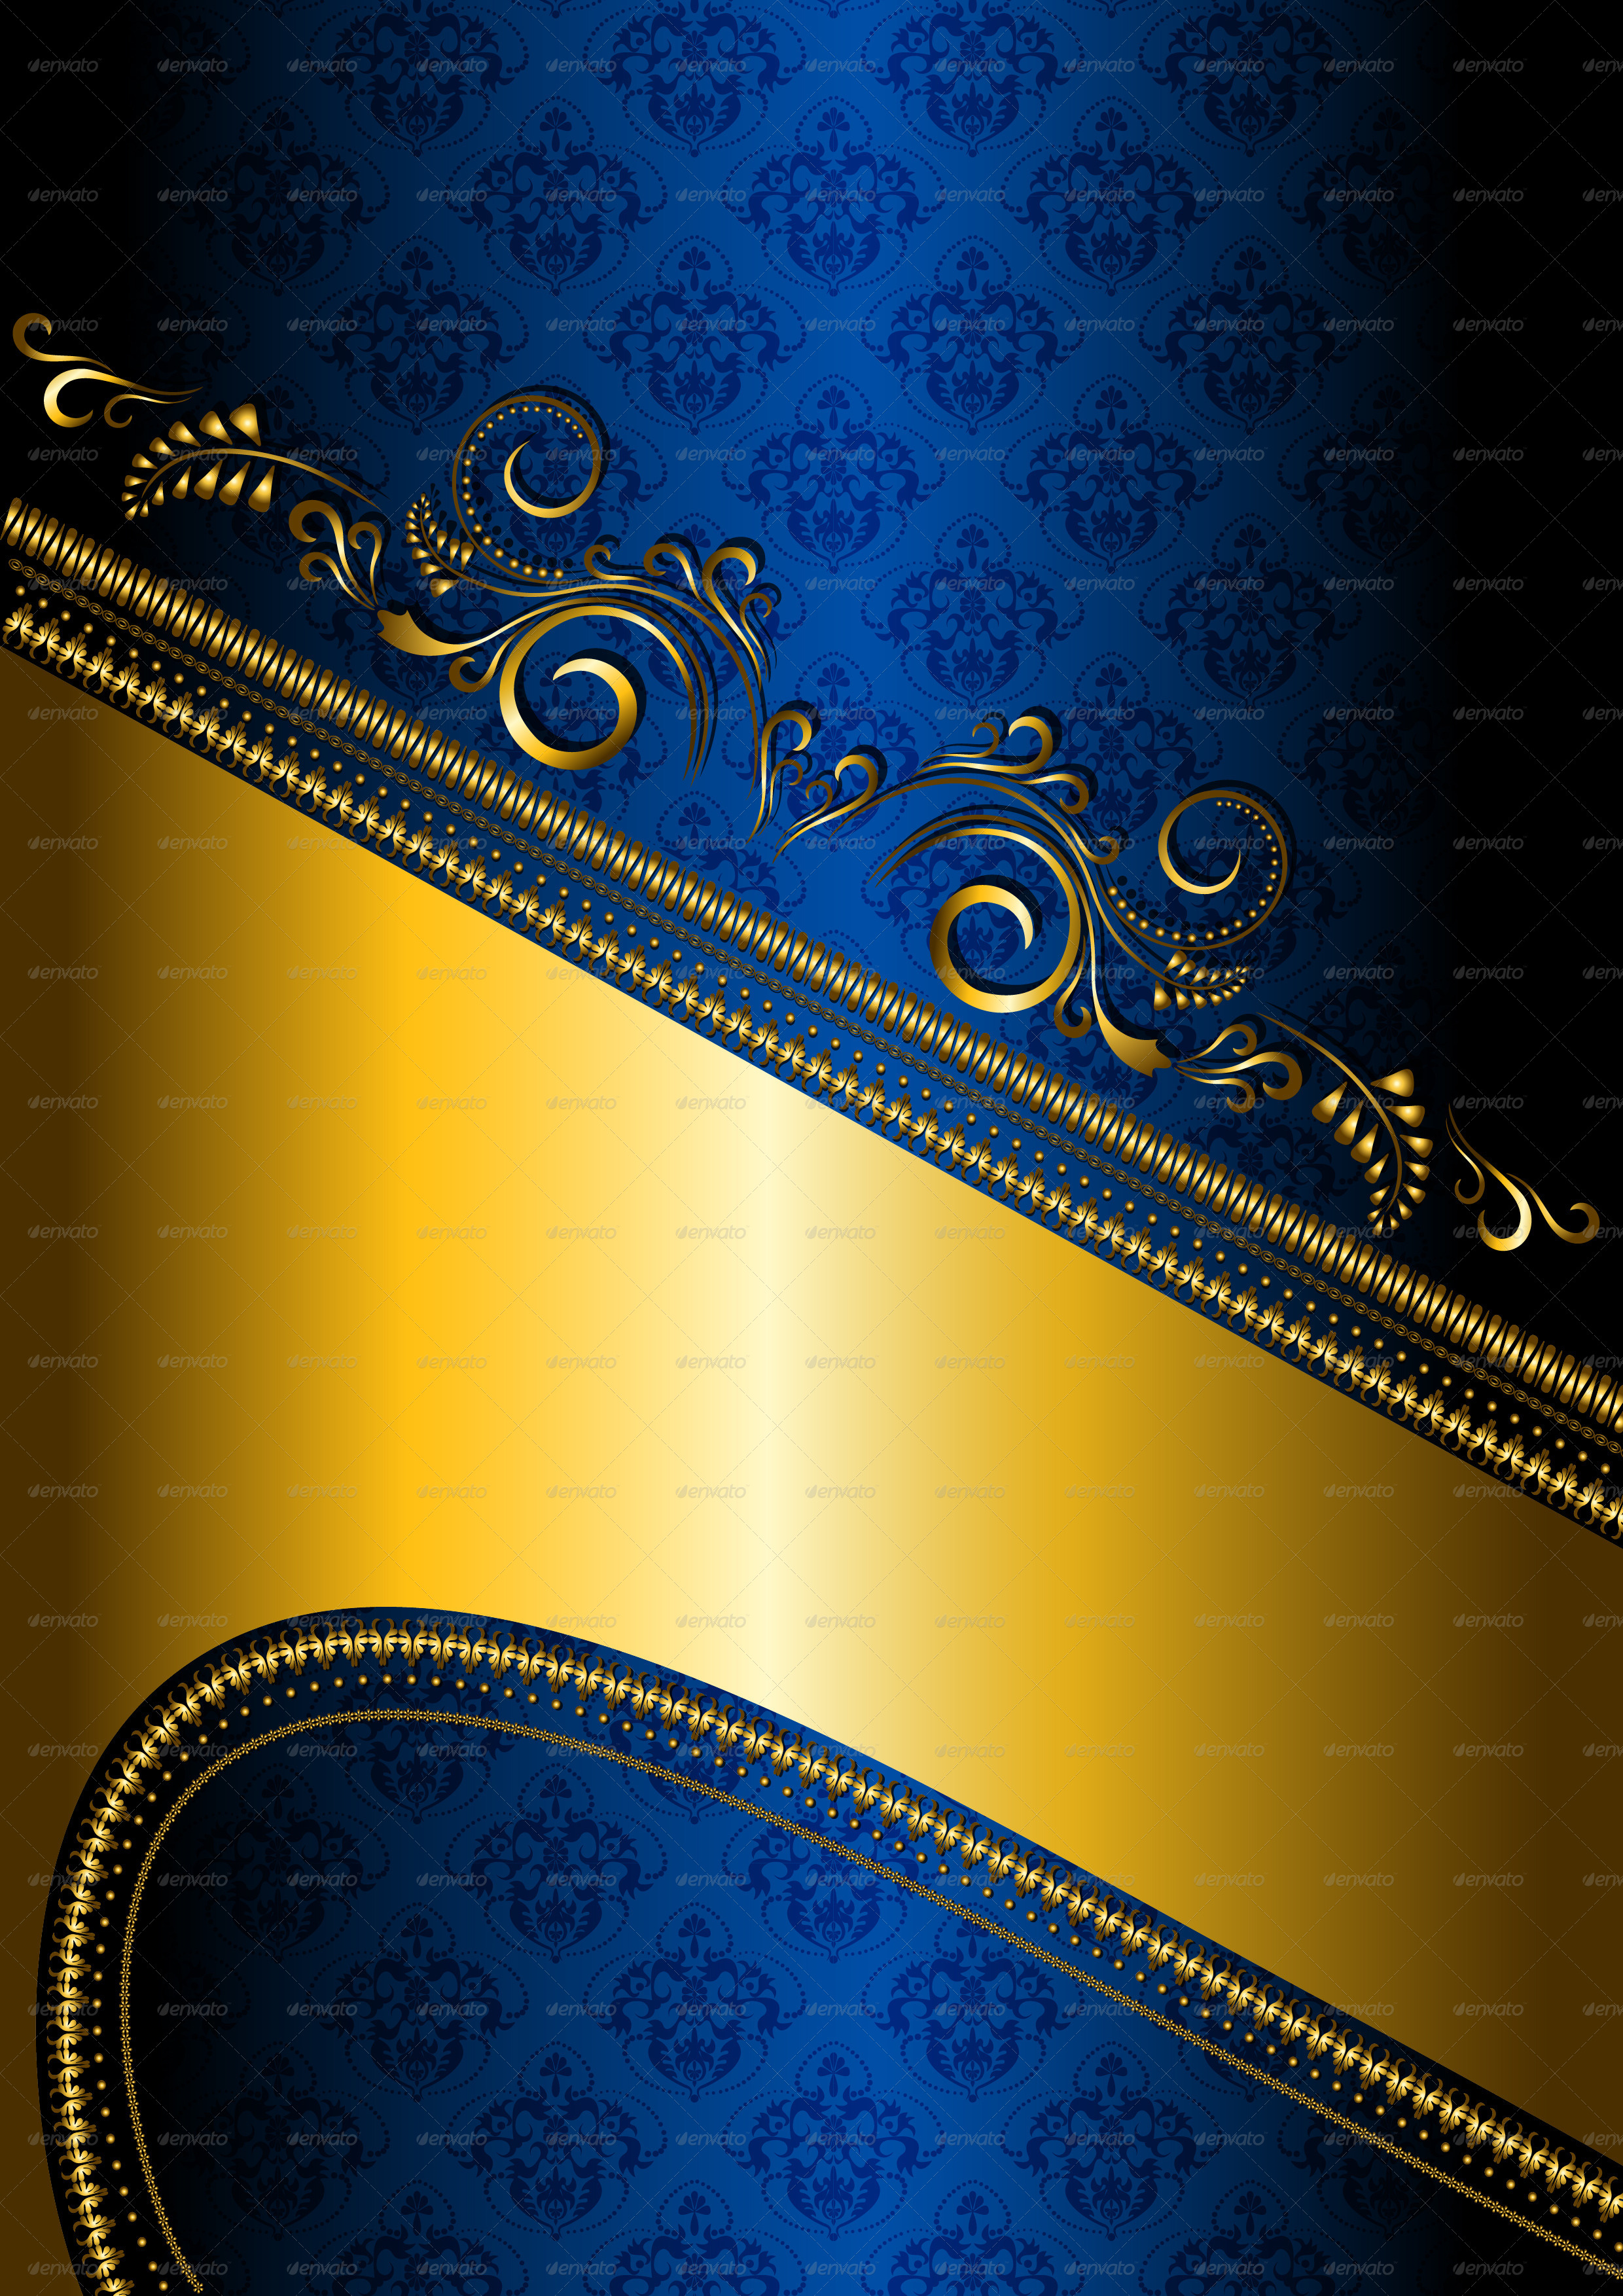 Gold Border on Blue Patterned Background   GraphicRiver Previewer 2480x3508